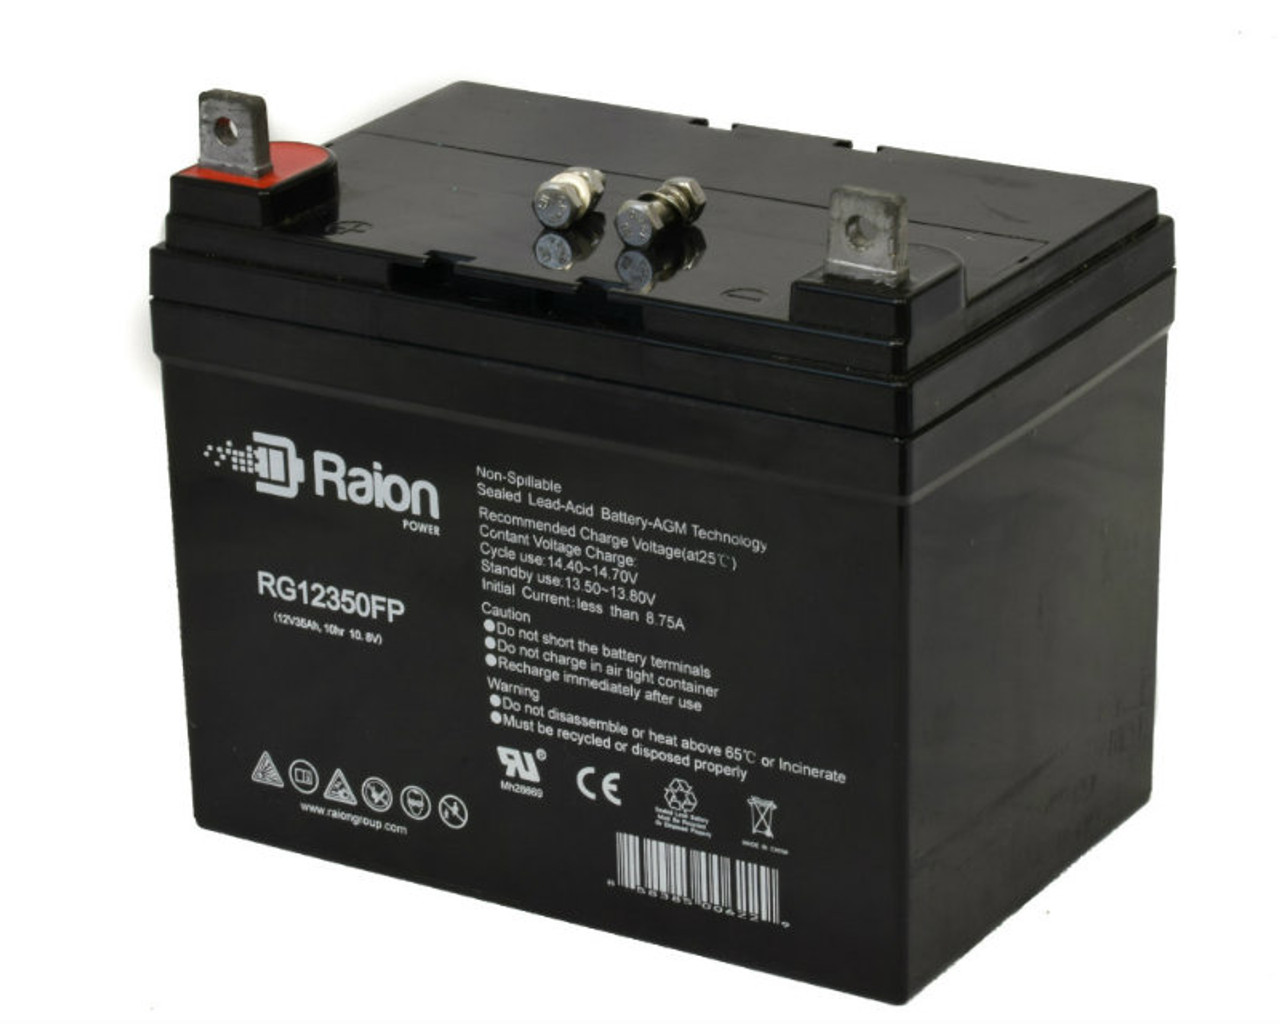 RG12350FP Sealed Lead Acid Battery Pack For Medical Resource Co Odyssey 600Hc Mobility Scooter